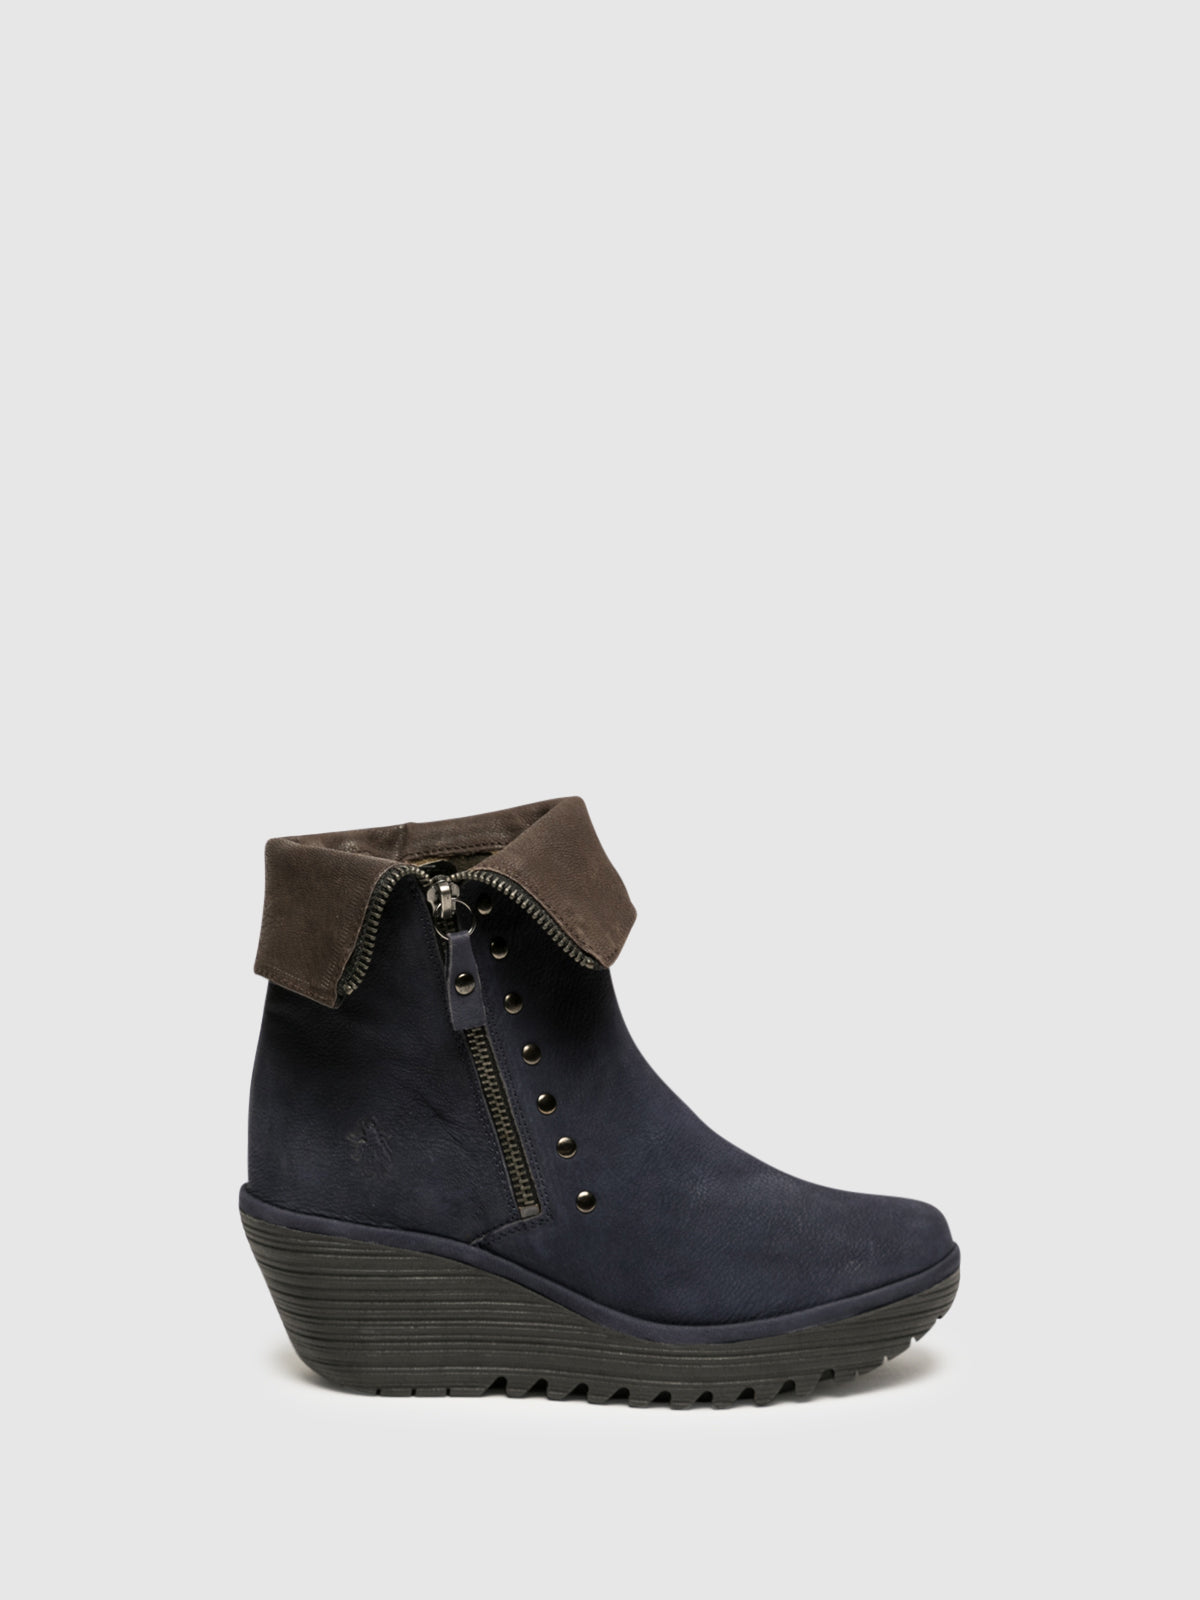 Fly London Navy Zip Up Ankle Boots